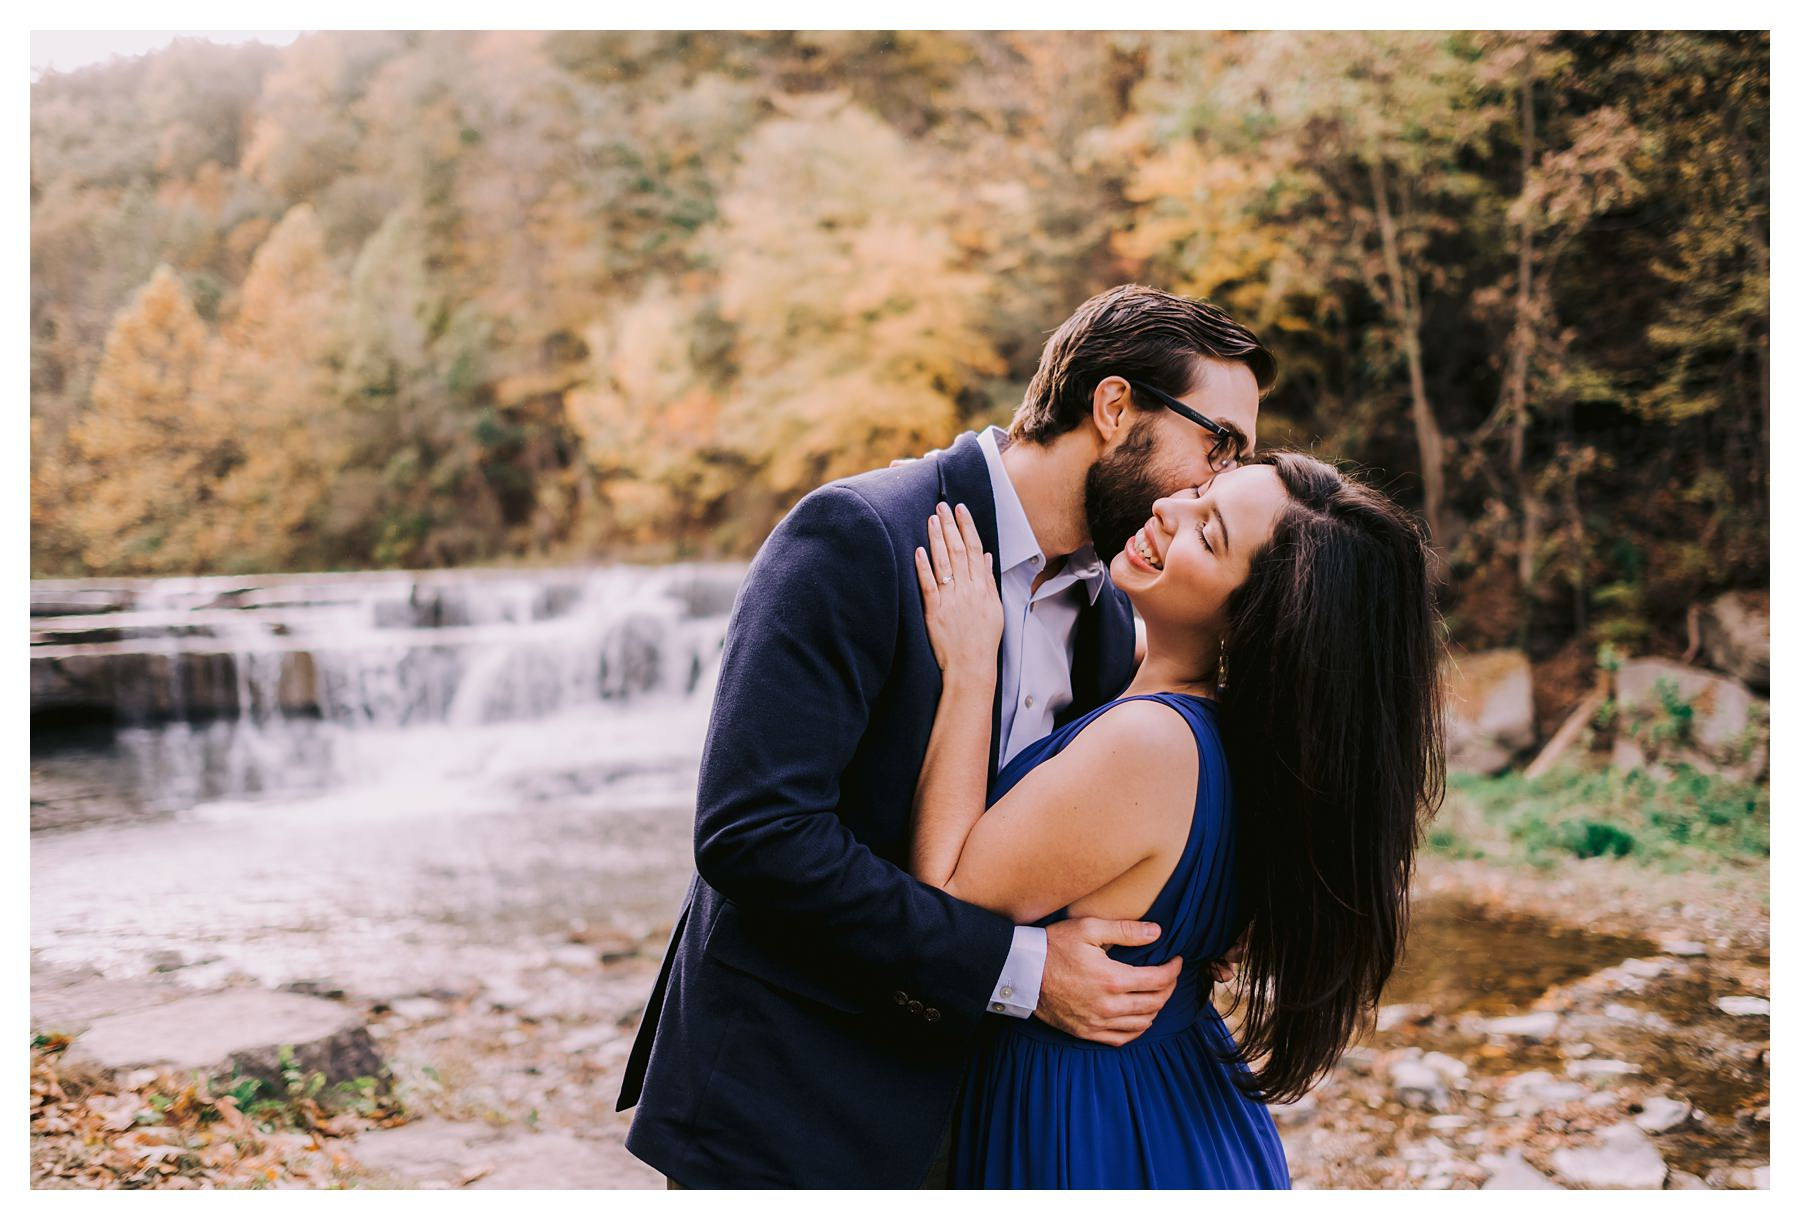 taughannock falls engagement session kissing cheek